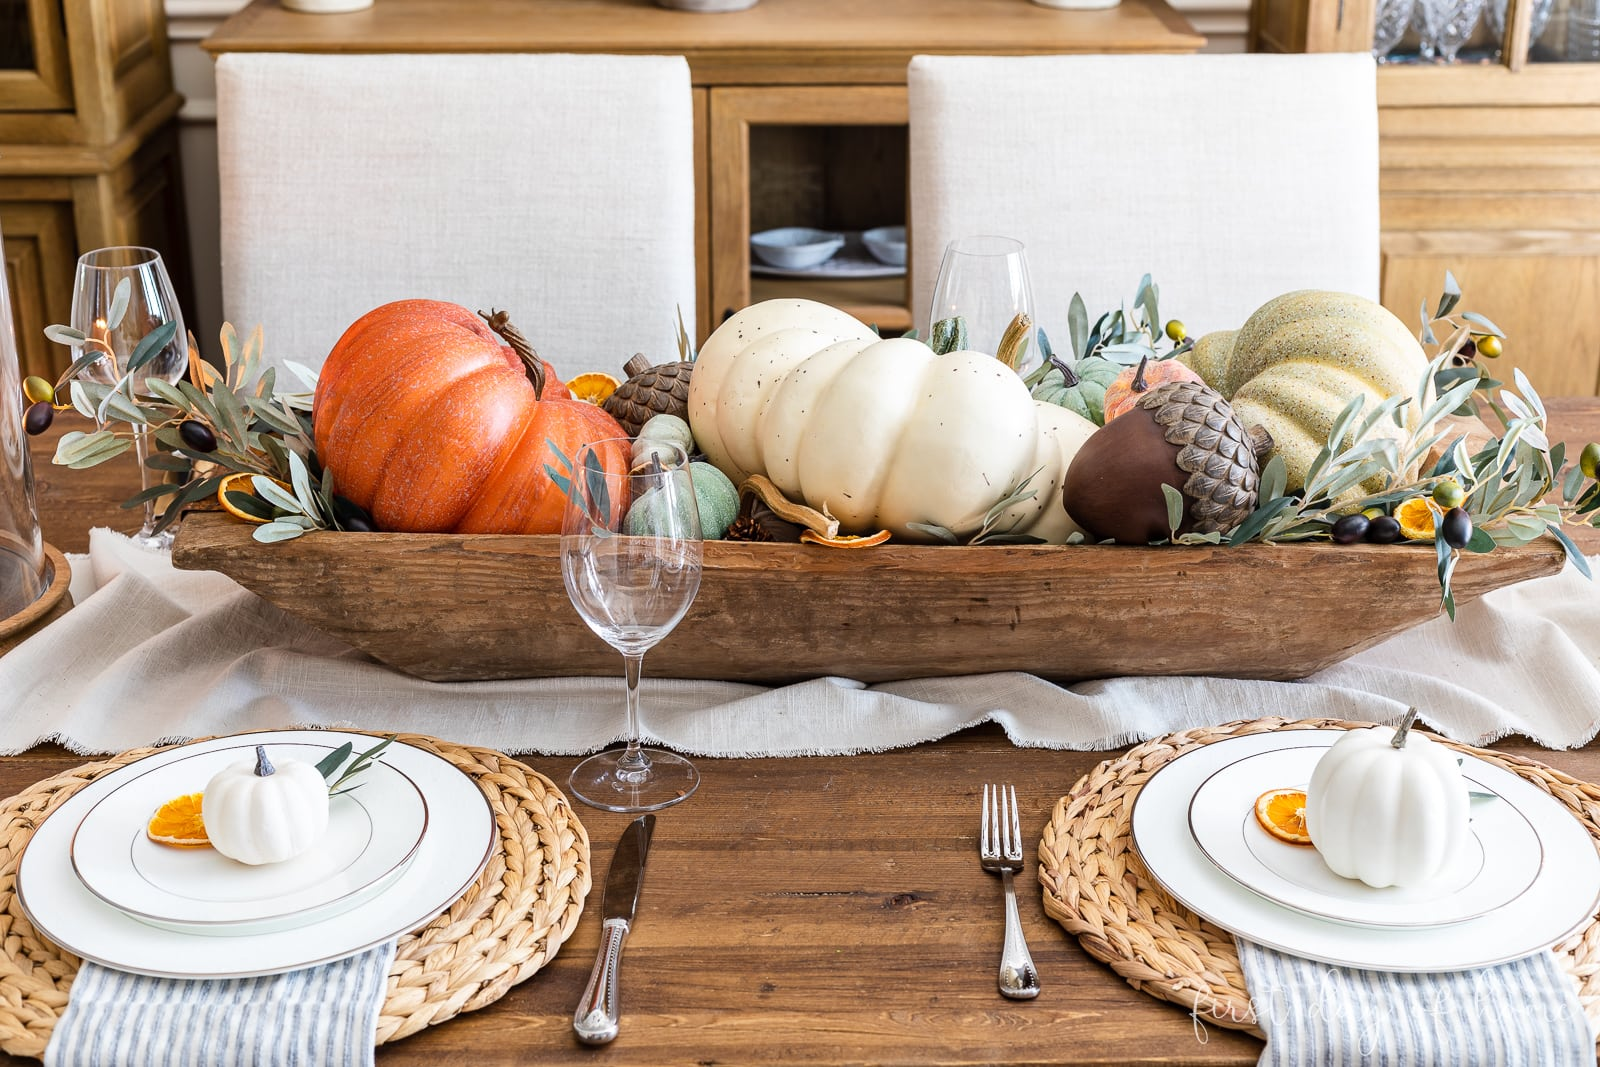 Fall table centerpiece with pumpkins, greenery and acorns